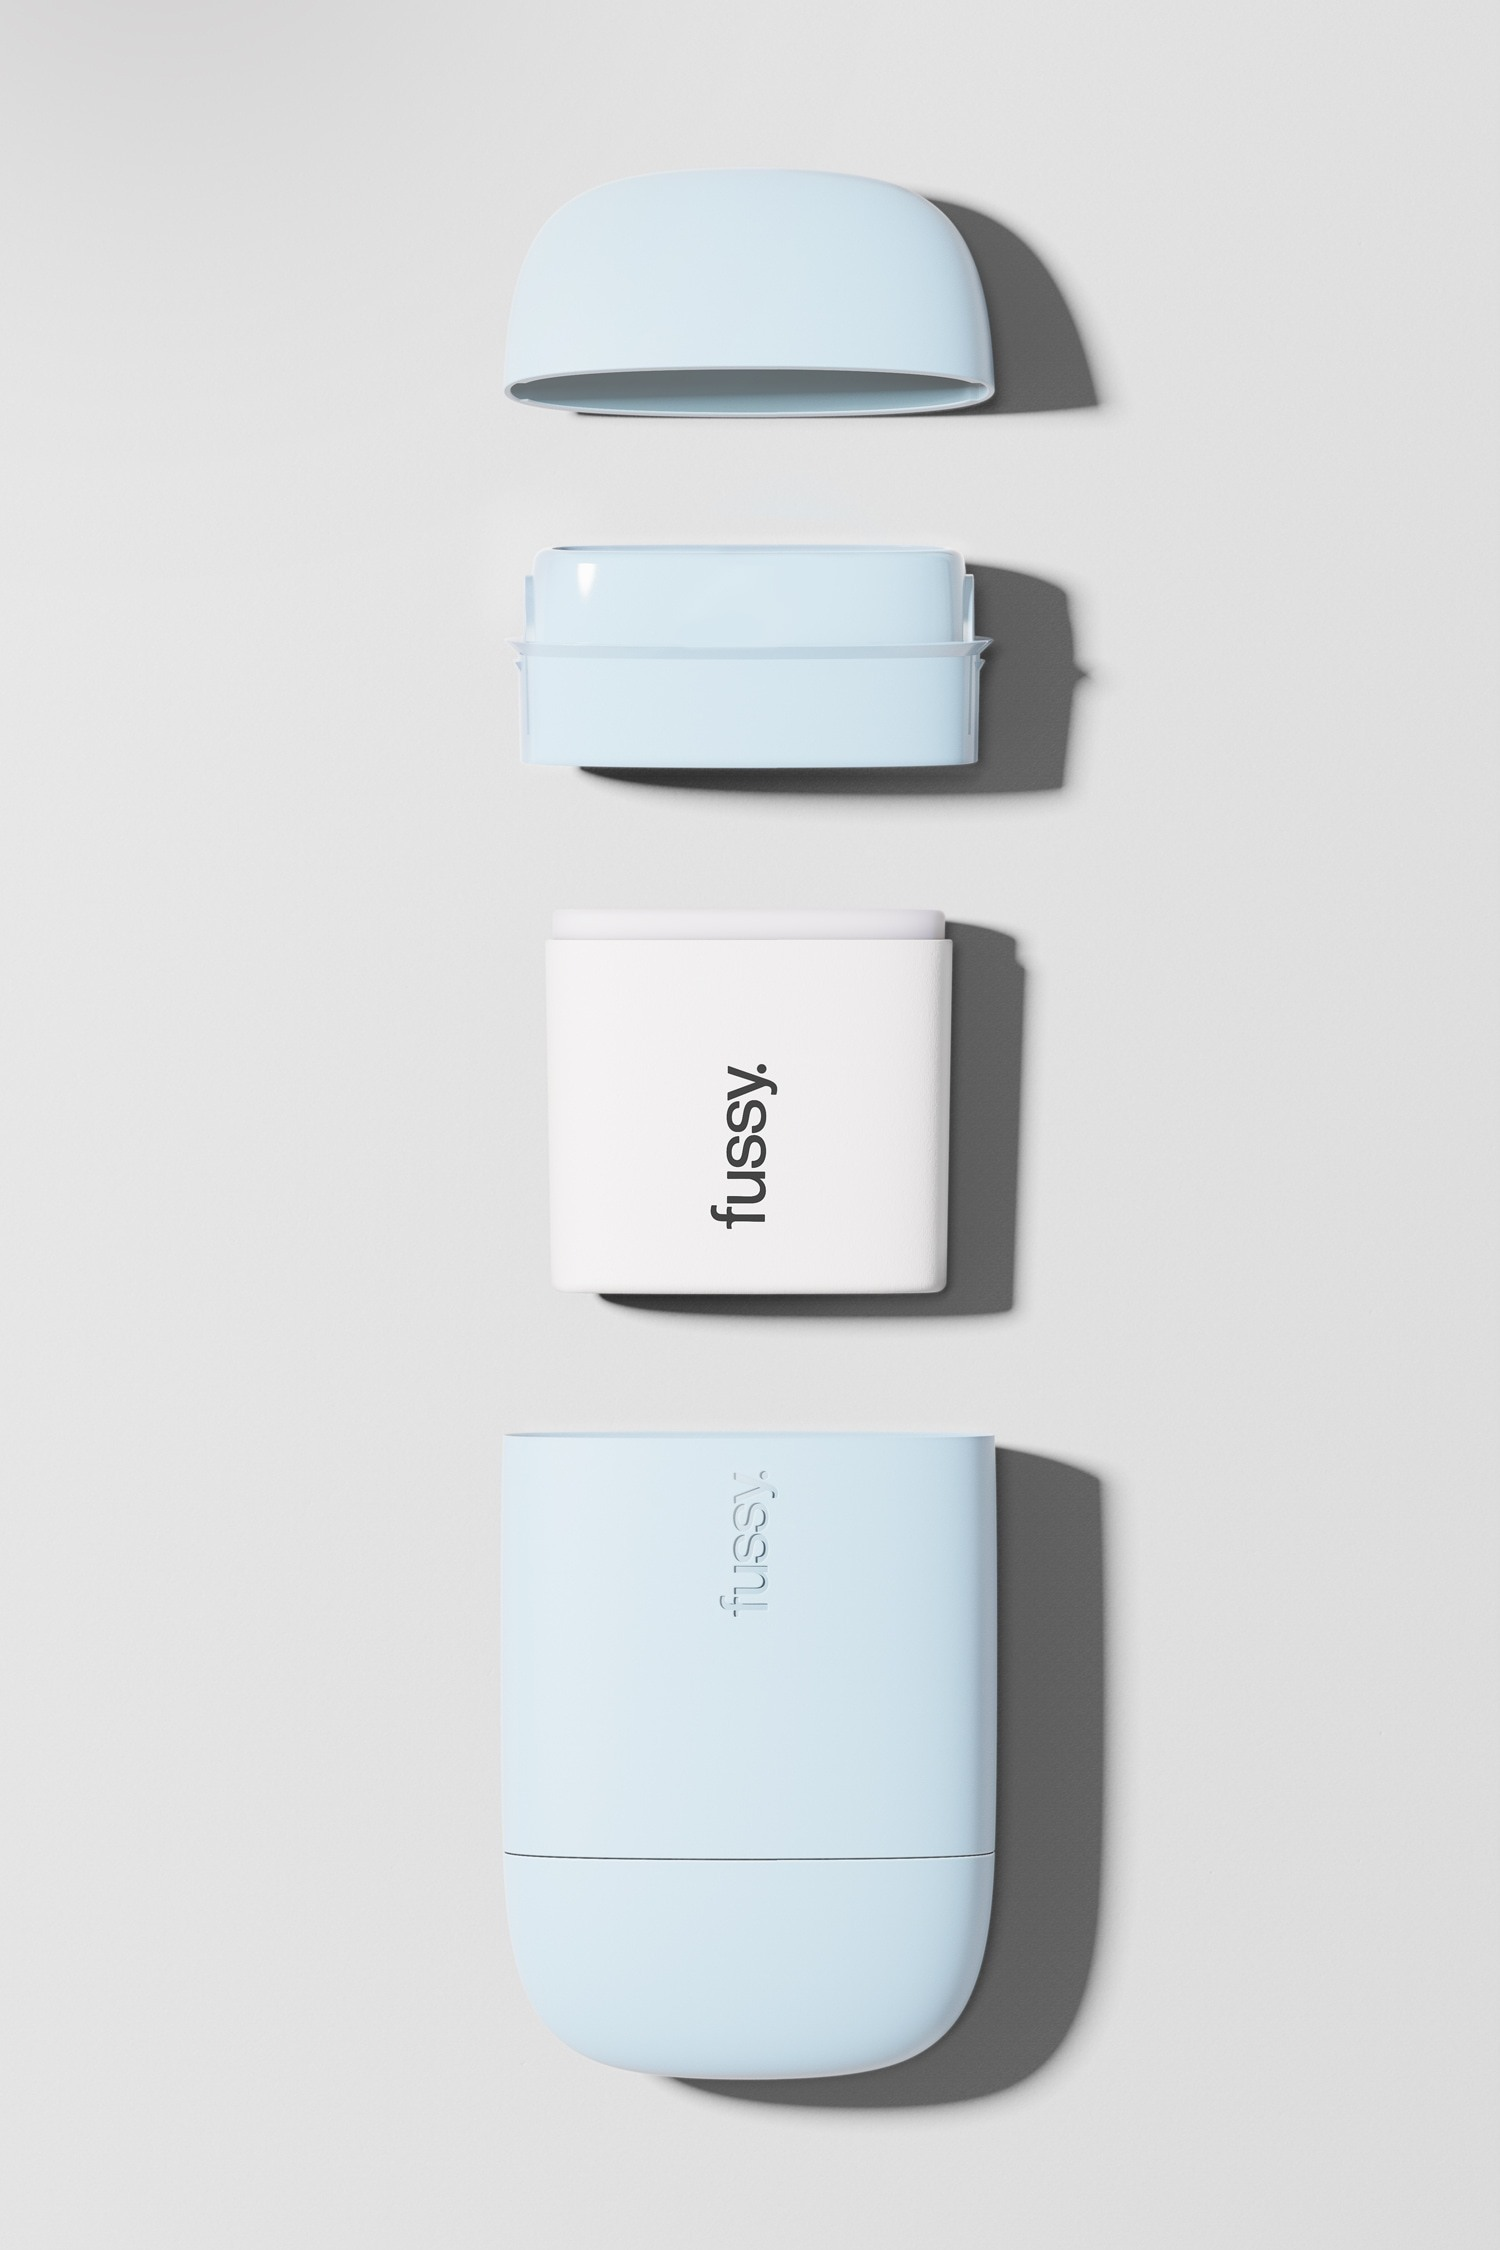 Blond-Design-Agency-Cosmetics-Packaging-Sustainable-Eco-Refillable-Deodorant-Fussy-10